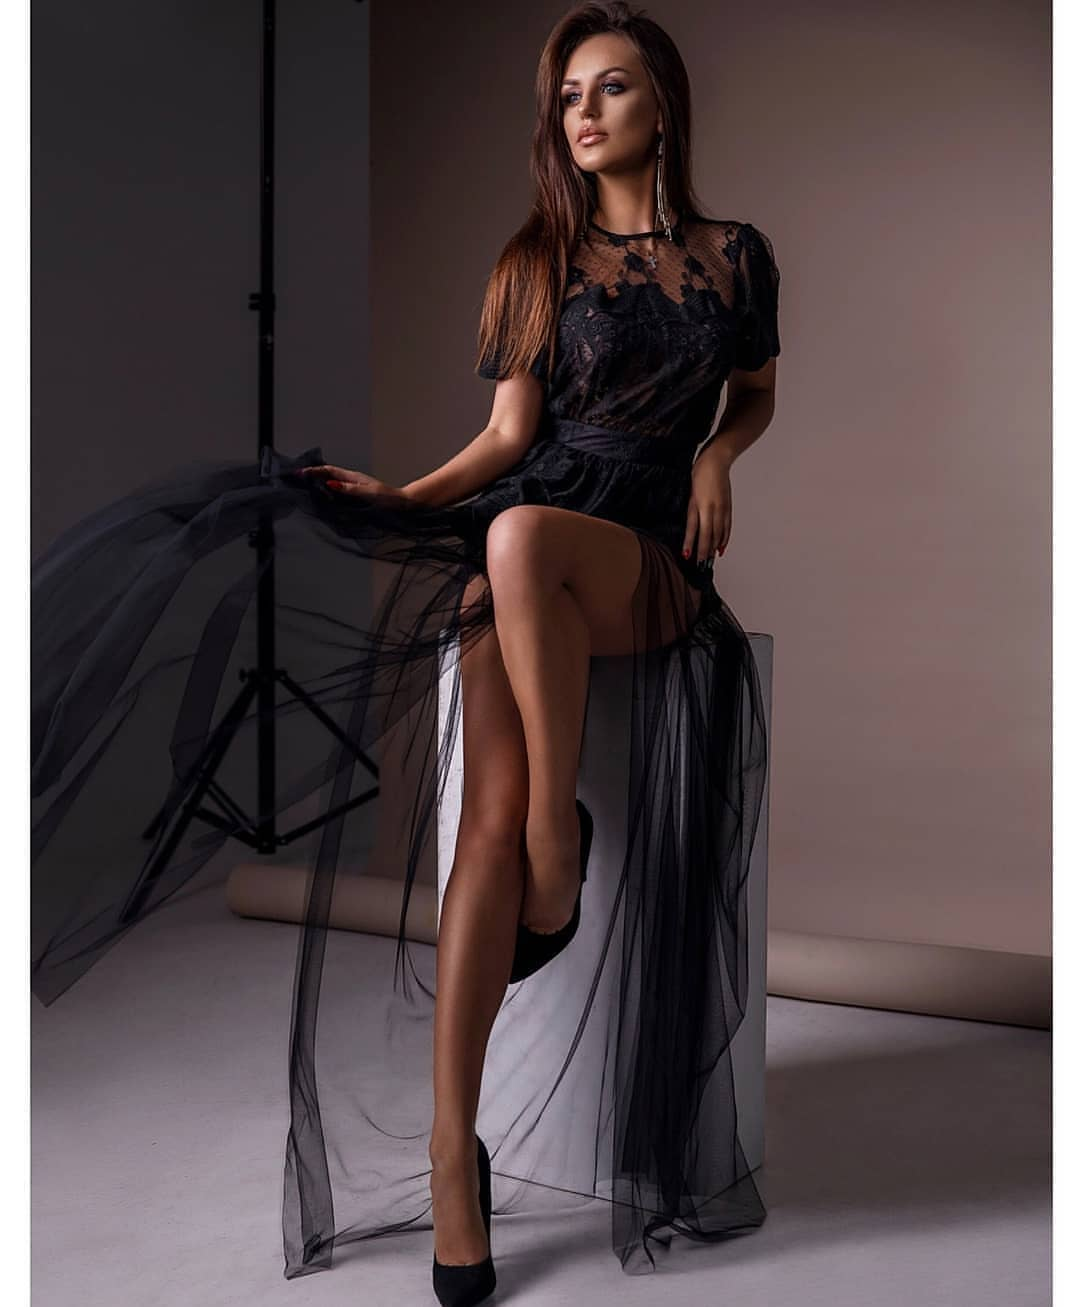 Maxi Dress In Black Sheer Veil For Summer Special Open Air Parties 2019